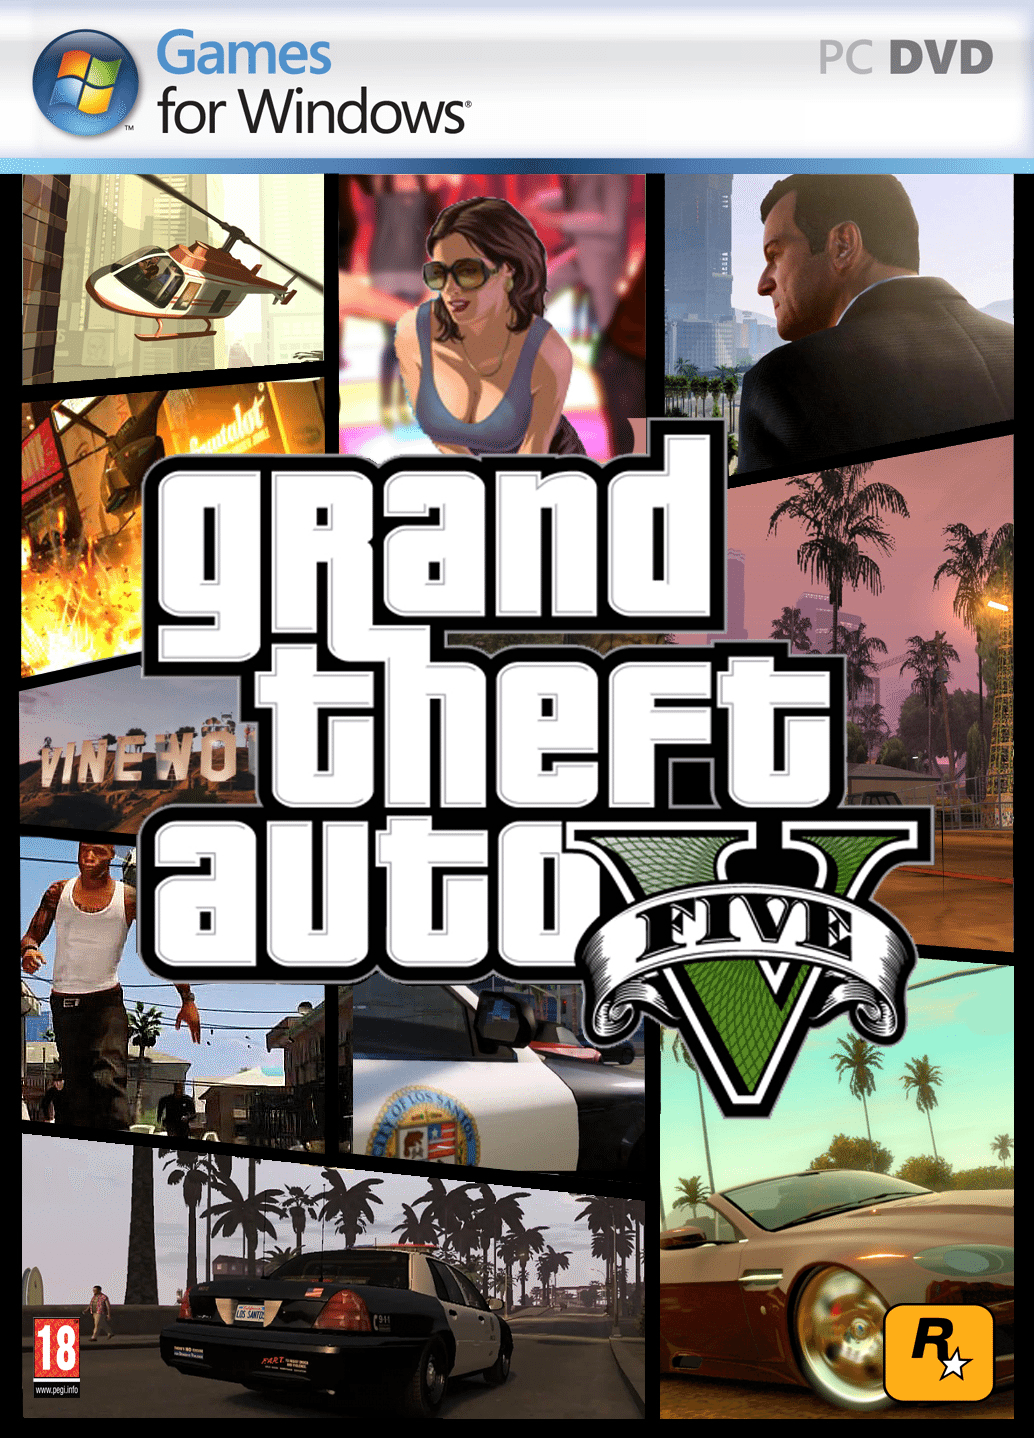 Download Kumpulan Game GTA PC Terlengkap - RonanElektron